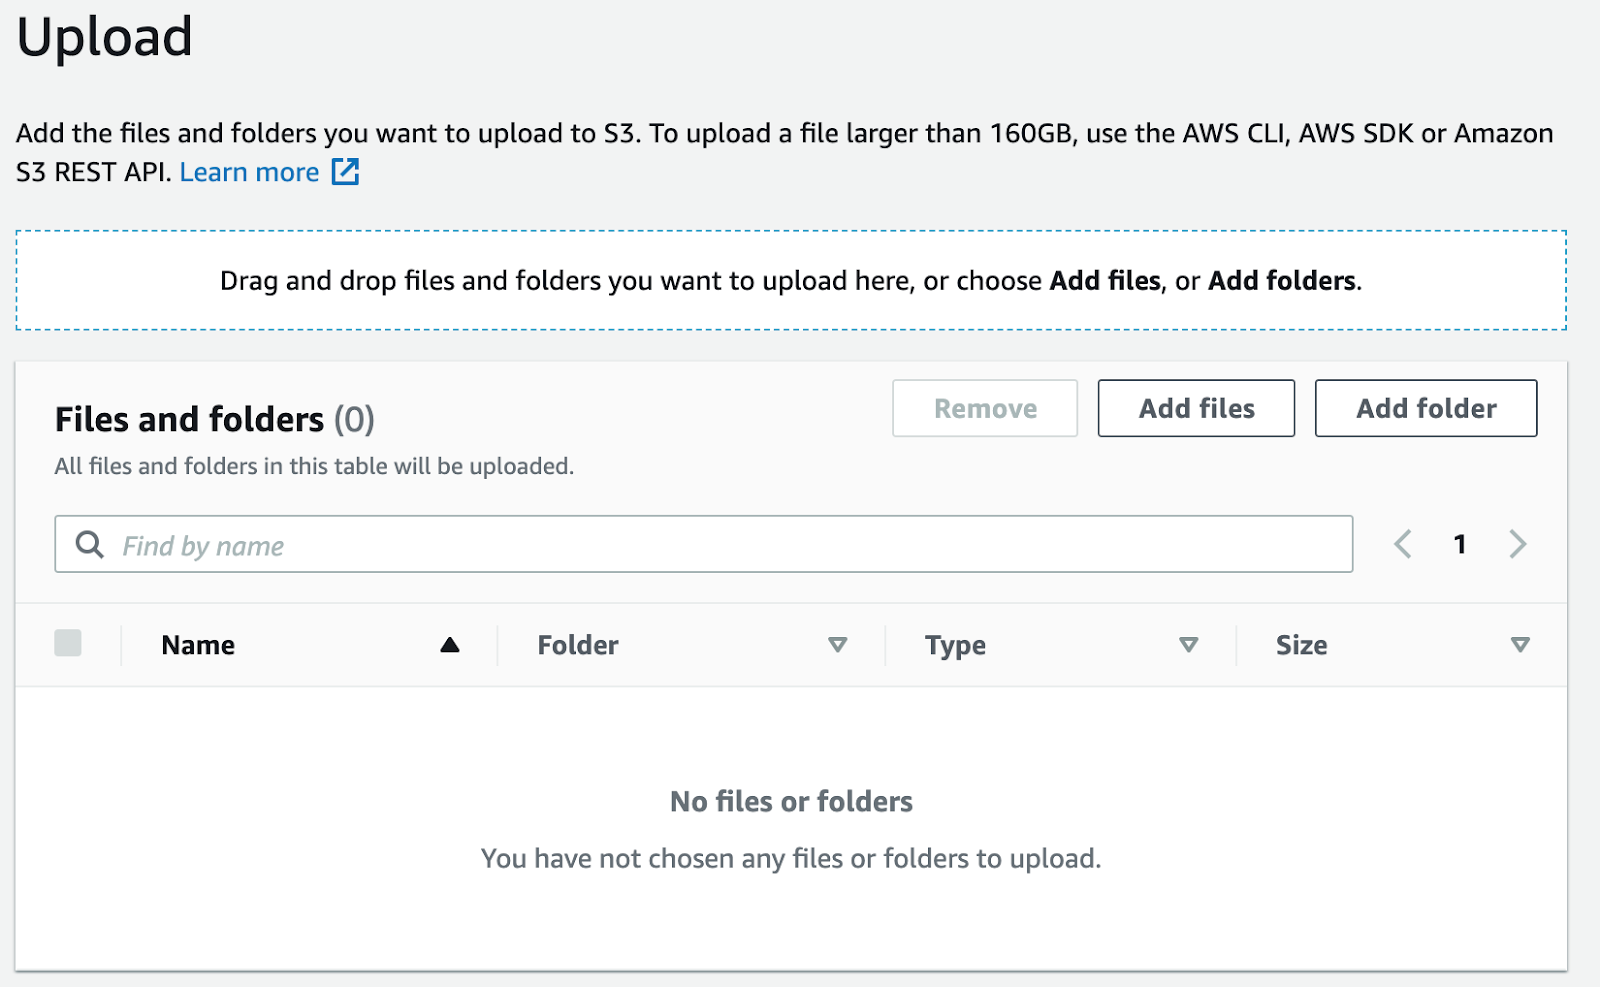 Click Upload, then Add files